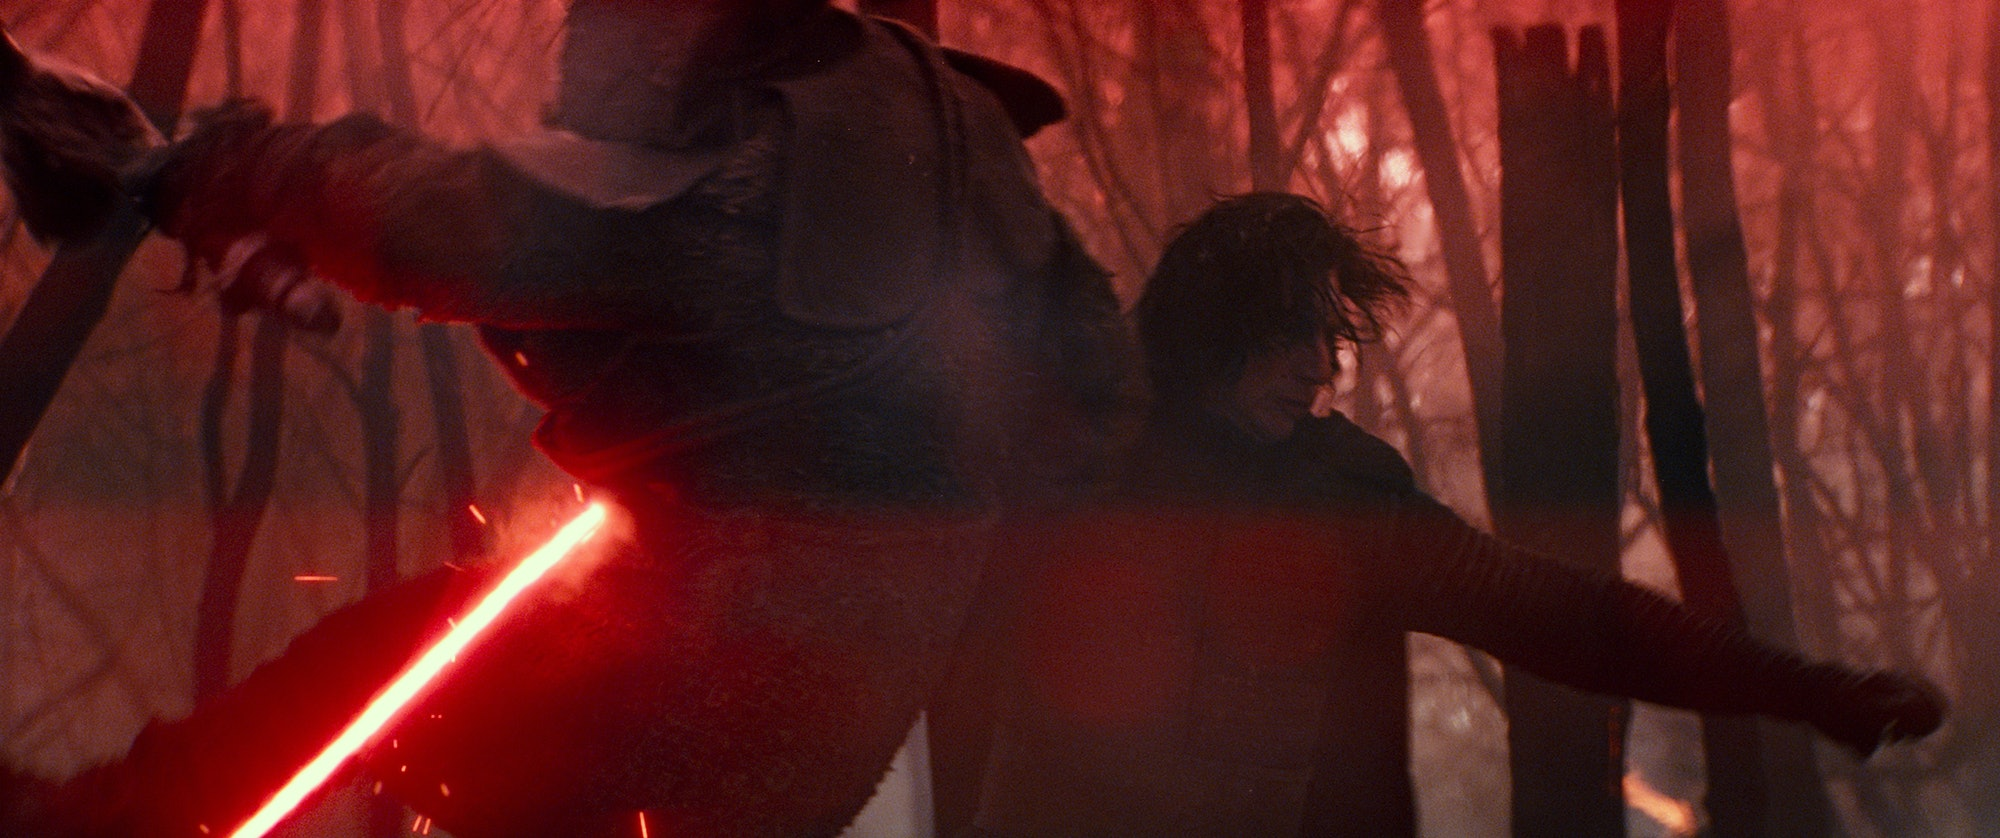 Knights of Ren Star Wars Rise of Skywalker Kylo Ren